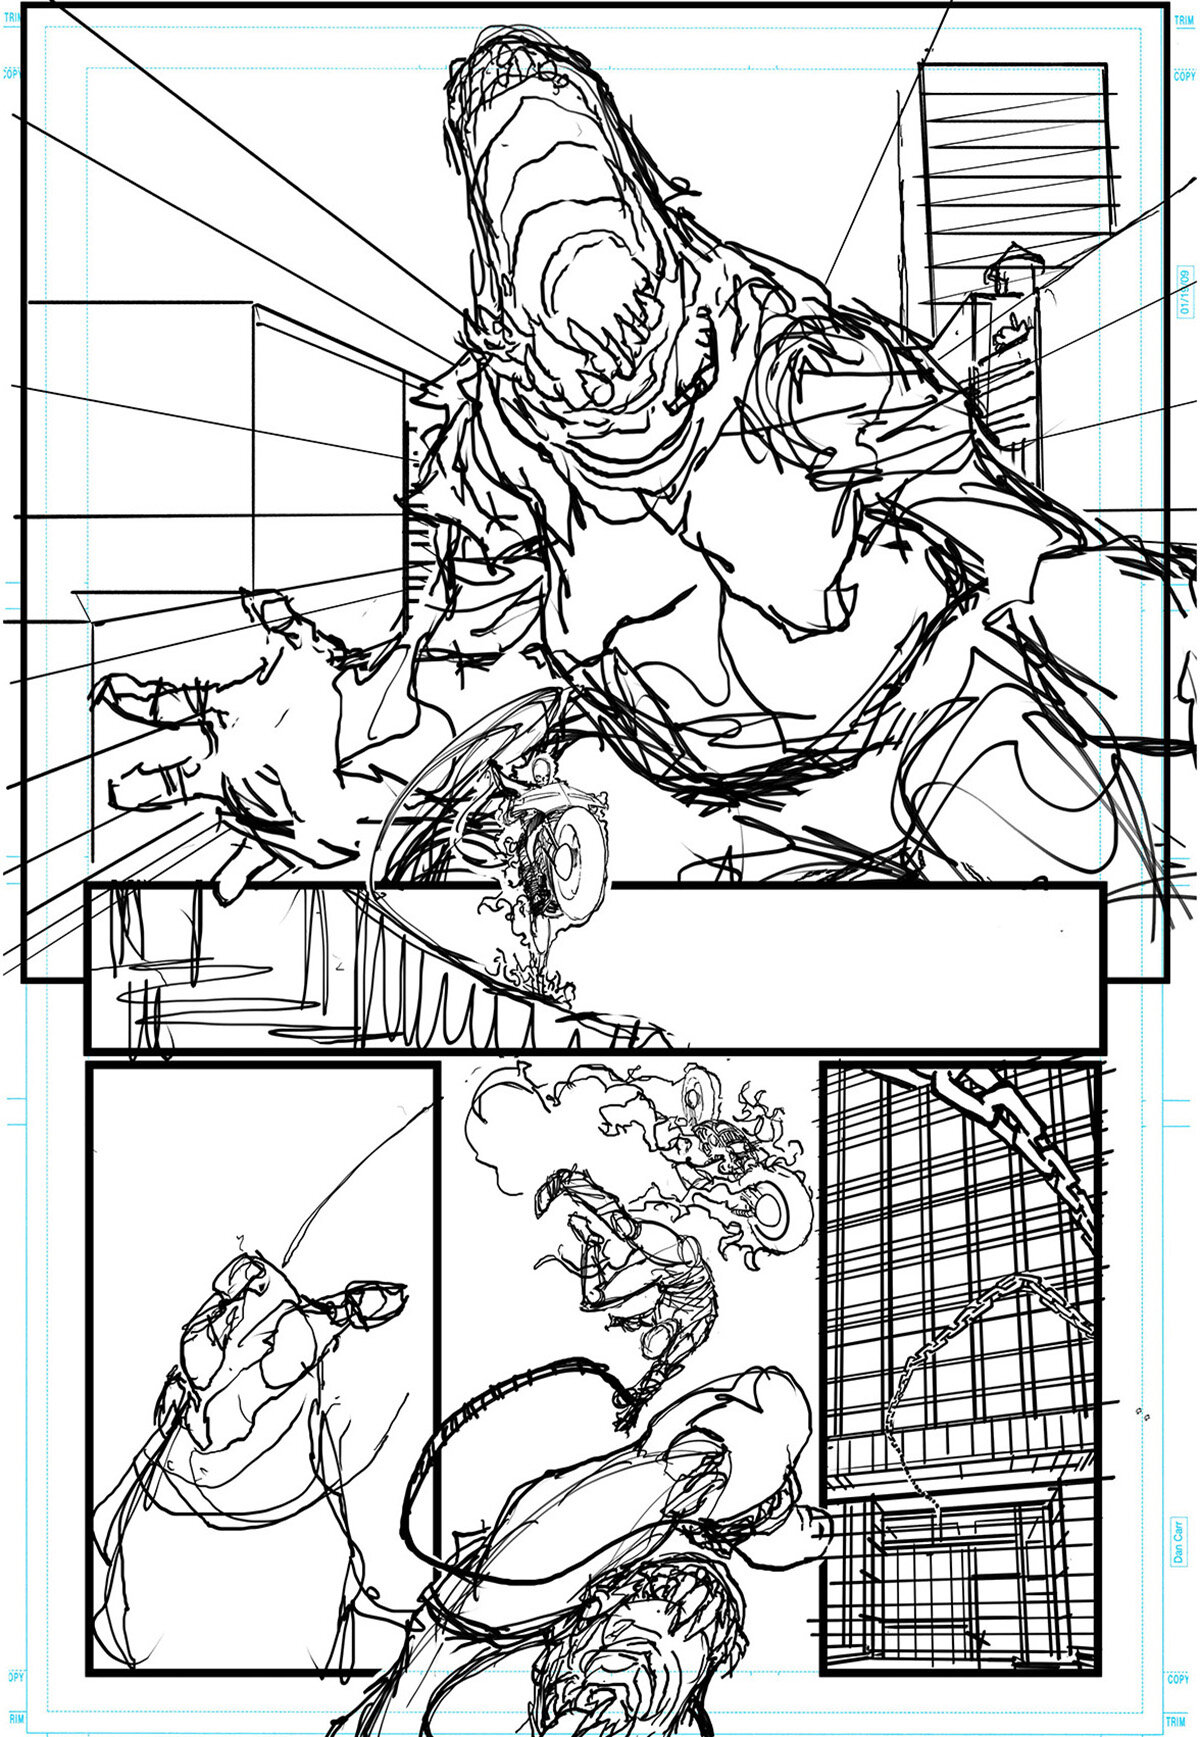 Layouts_Preview.jpg